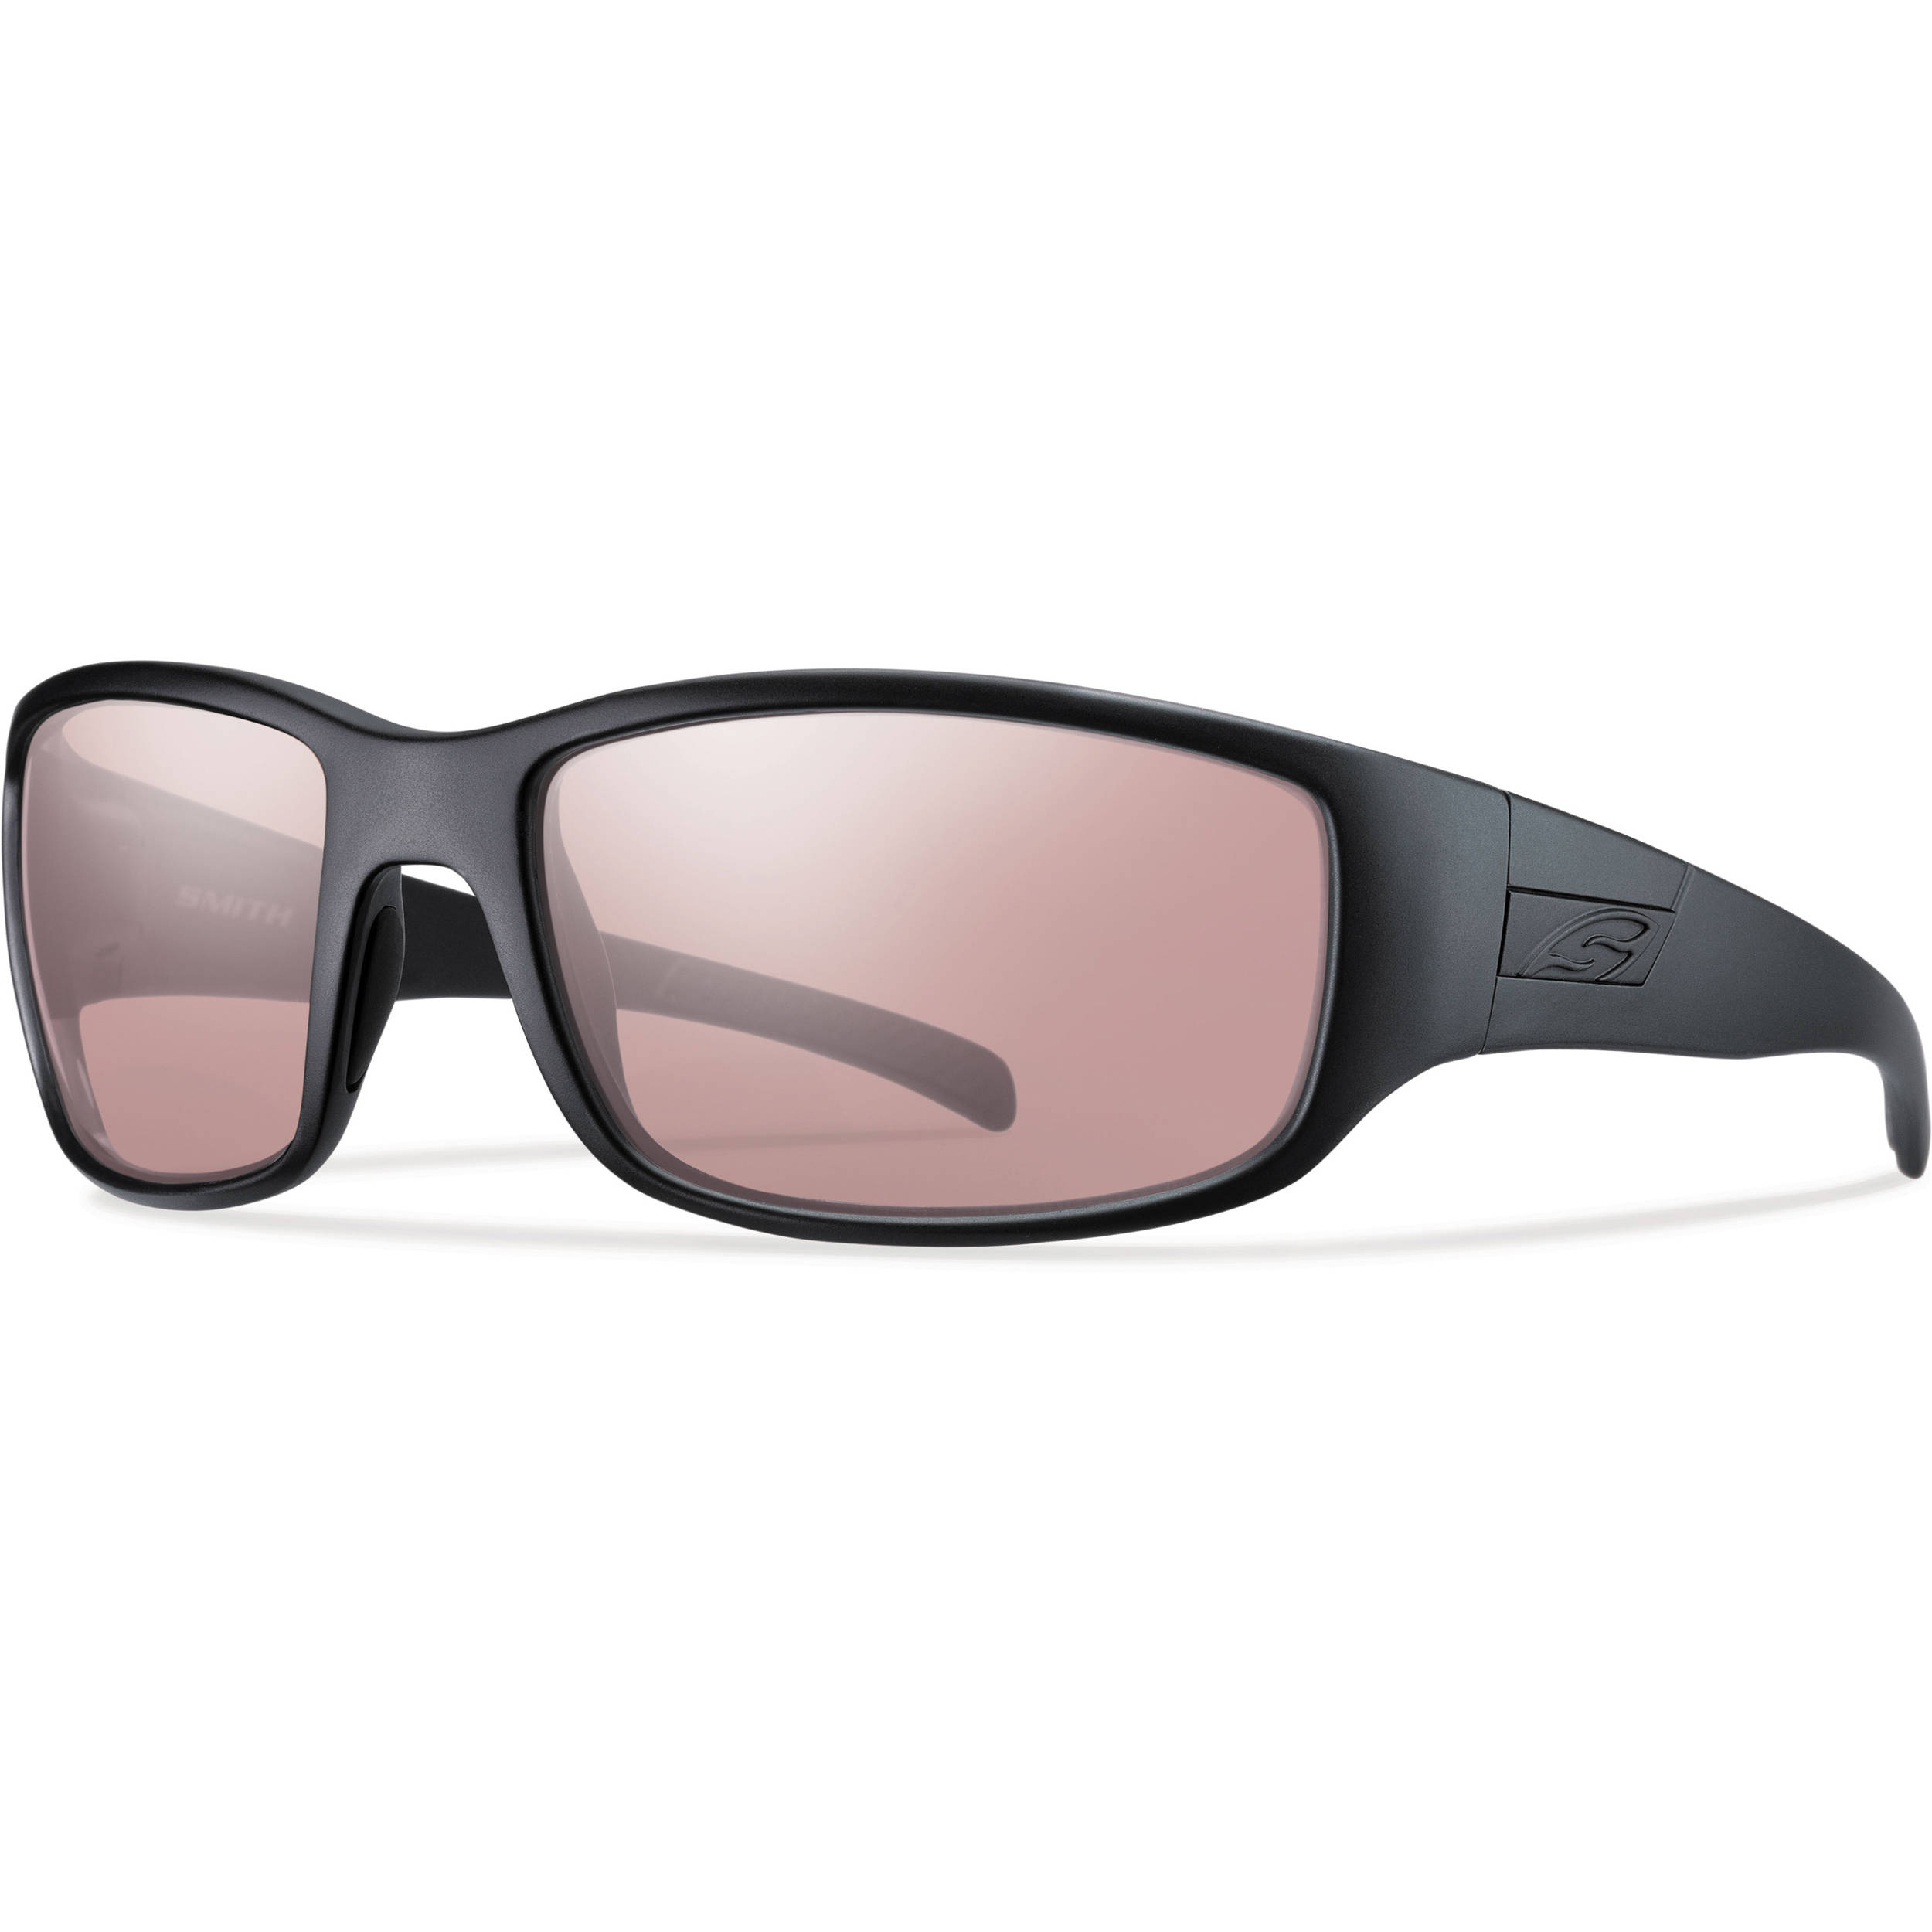 d38fe64be7c ... Black Source · Smith Optics Prospect Tactical Sunglasses PRTPCIG22BK  B H Photo